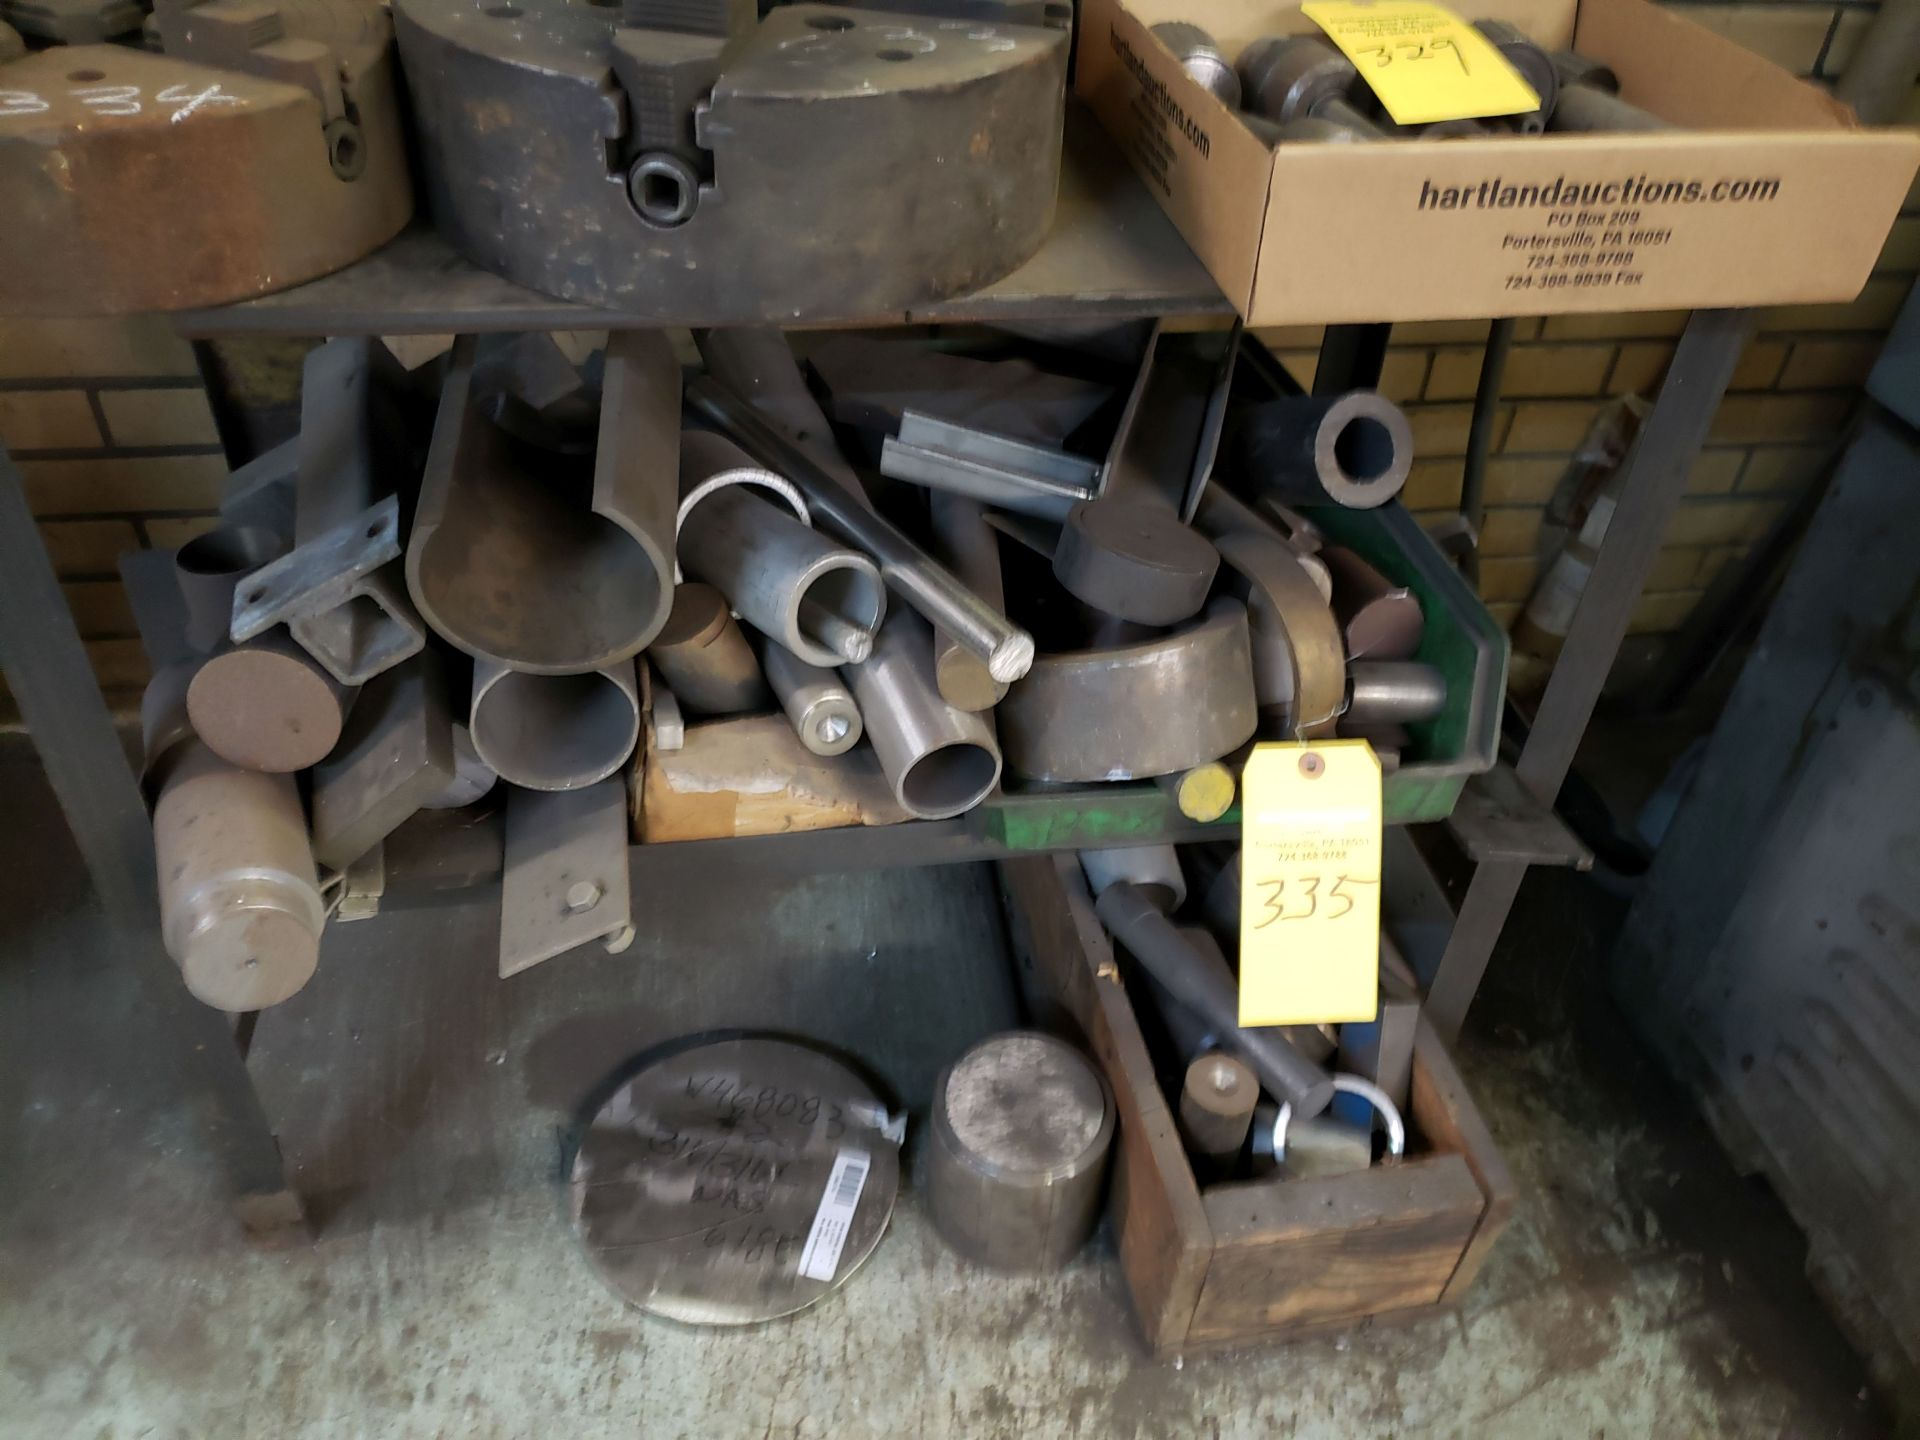 Lot 335 - TABLE AND MISC METALS